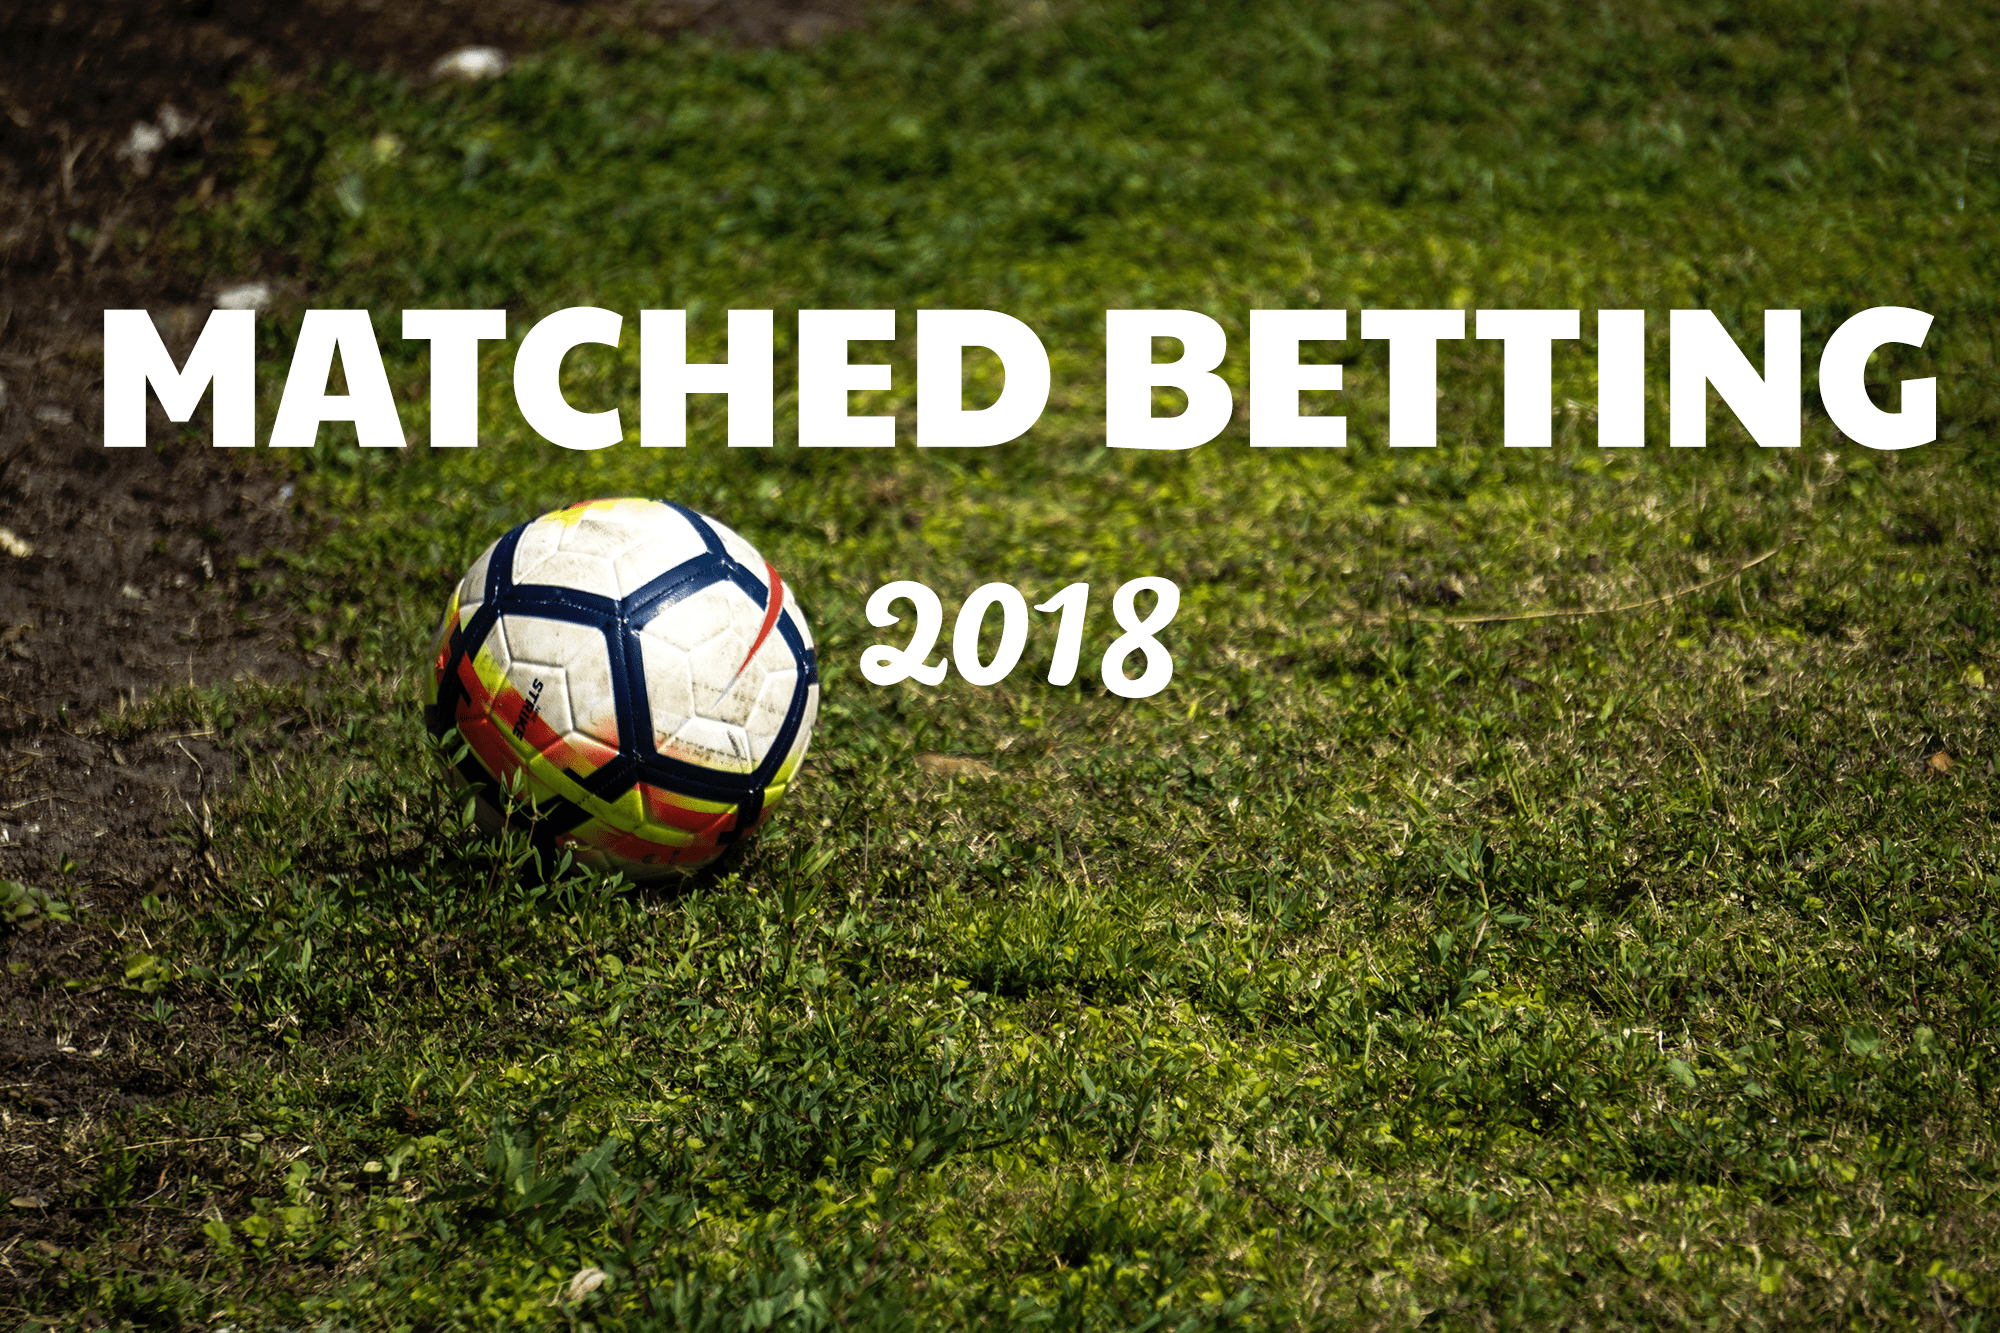 Matched Betting 2018